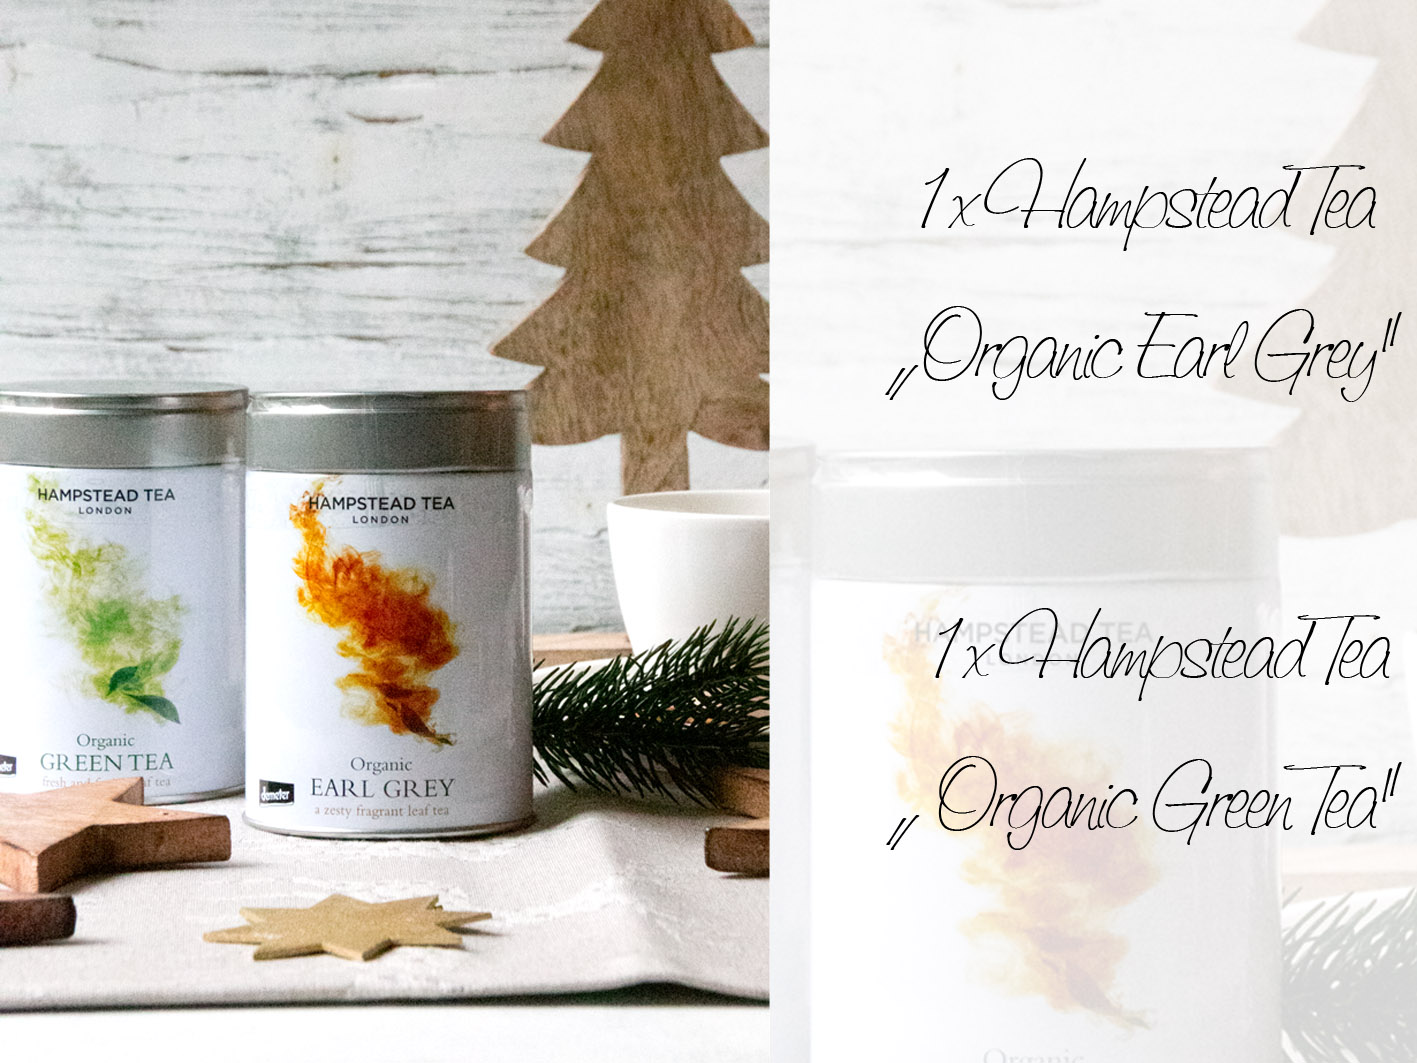 foodlovin-adventskalender-hampsteat-tea